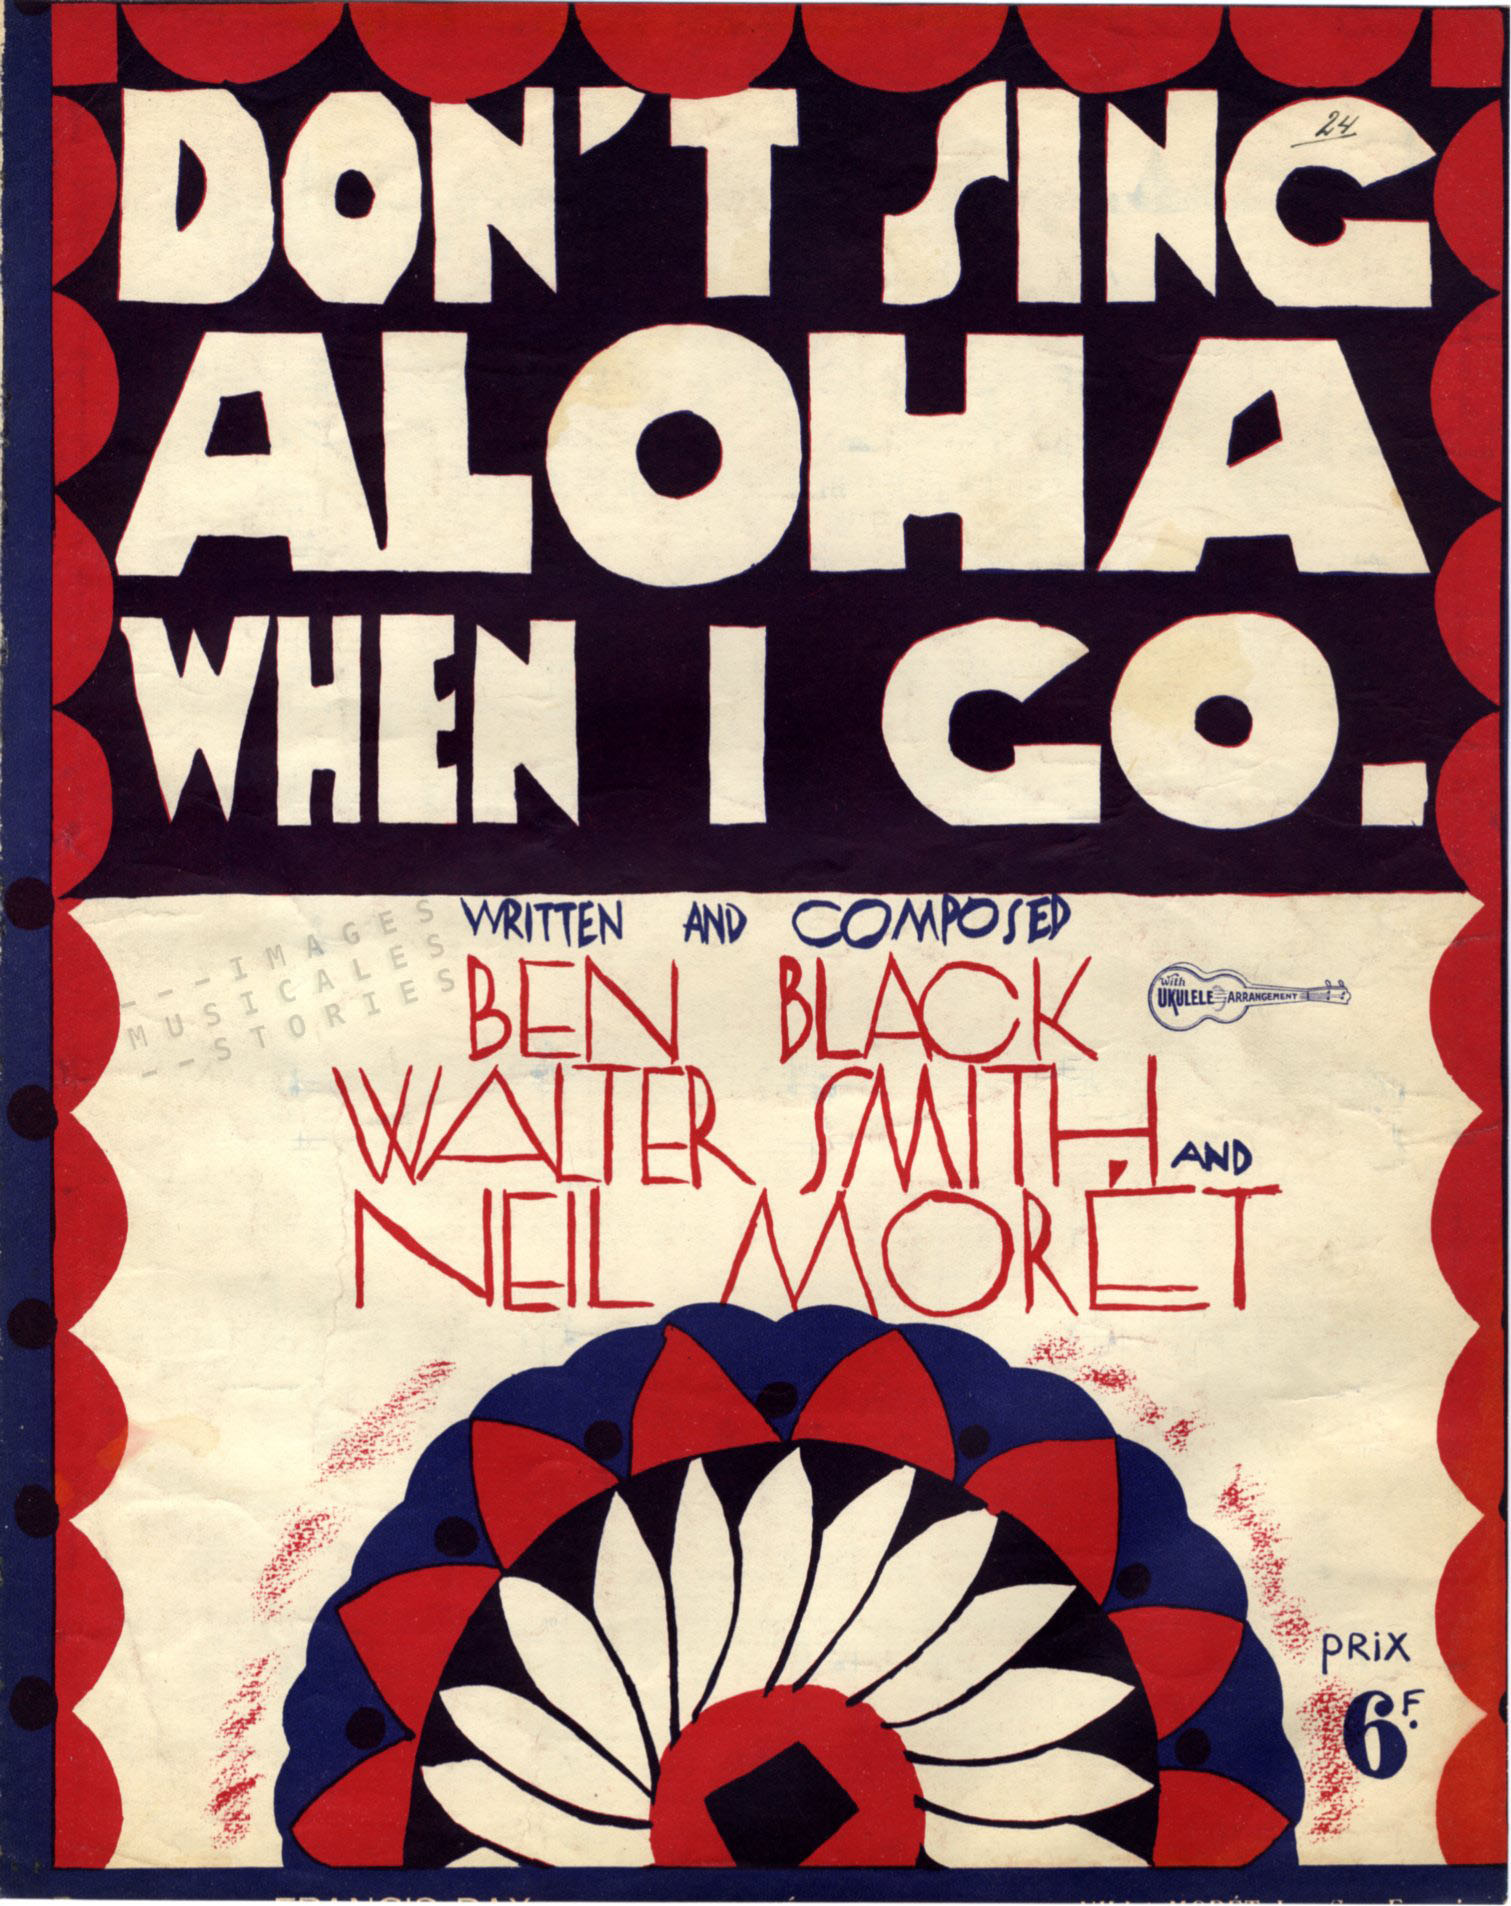 'Don't Sing Aloha when I Go', Illustration attributed to Fabien Loris.